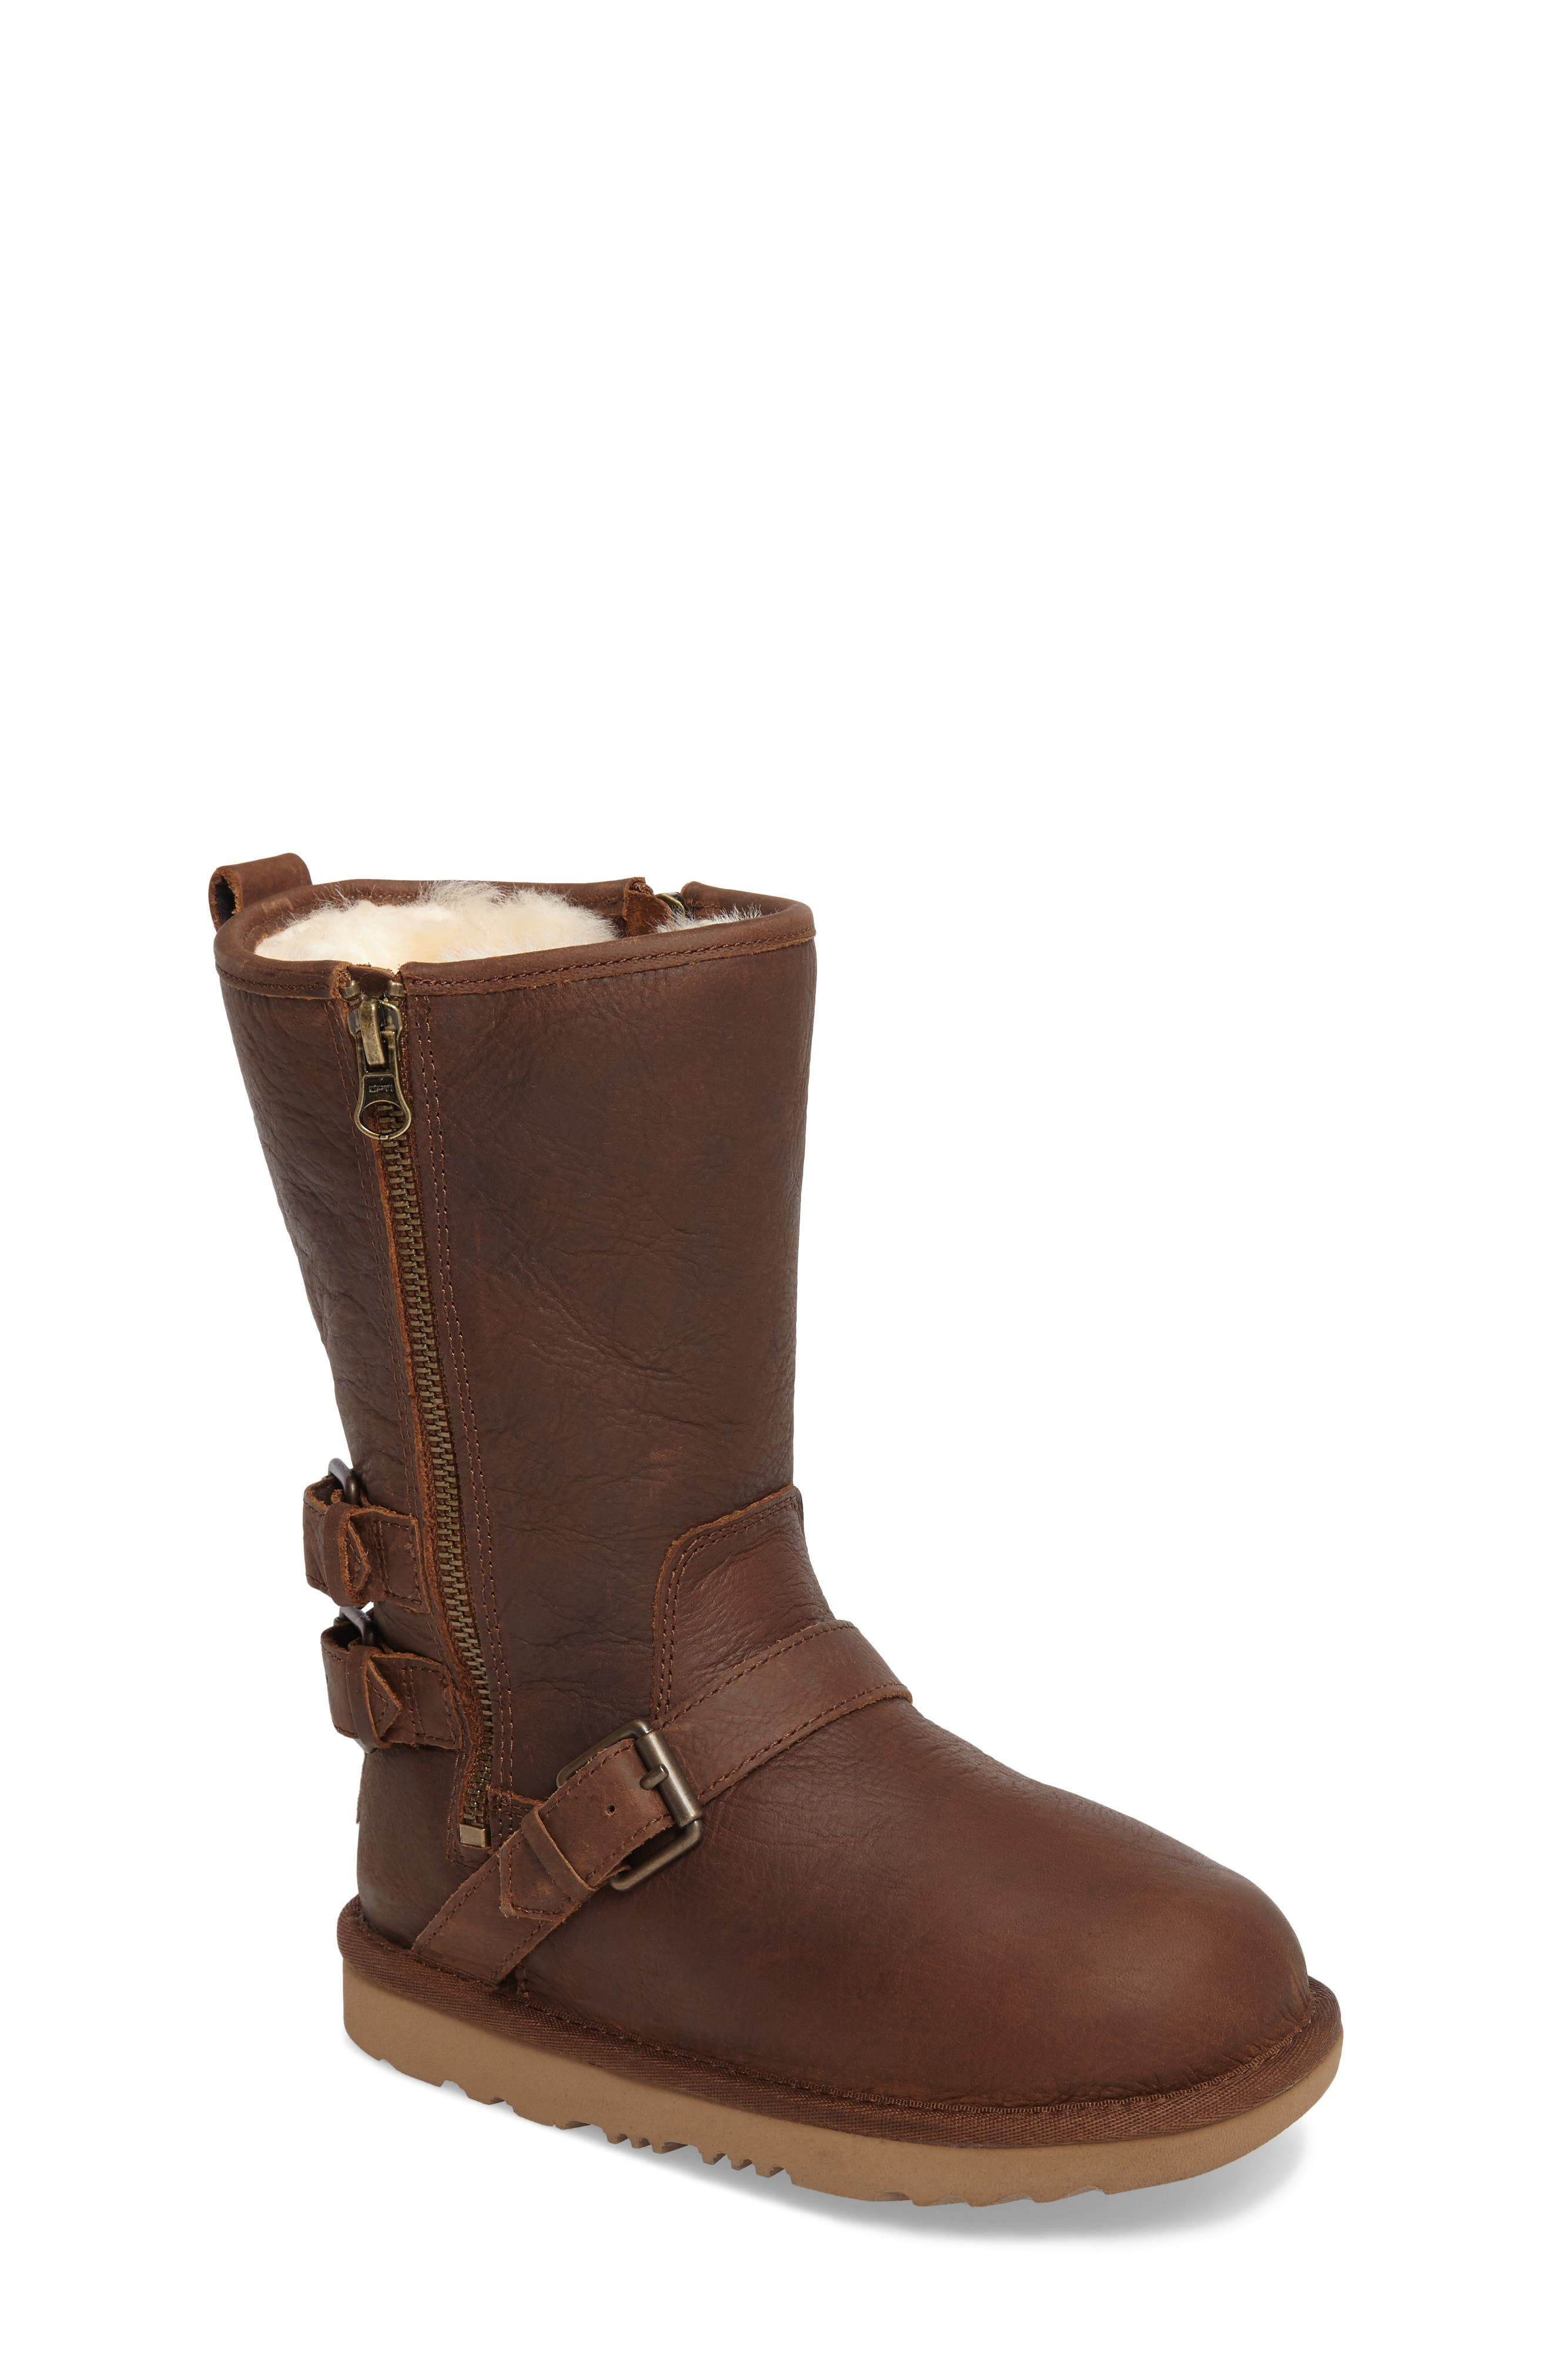 Kaila Genuine Shearling Buckle Strap Bootie,                             Main thumbnail 1, color,                             Toast